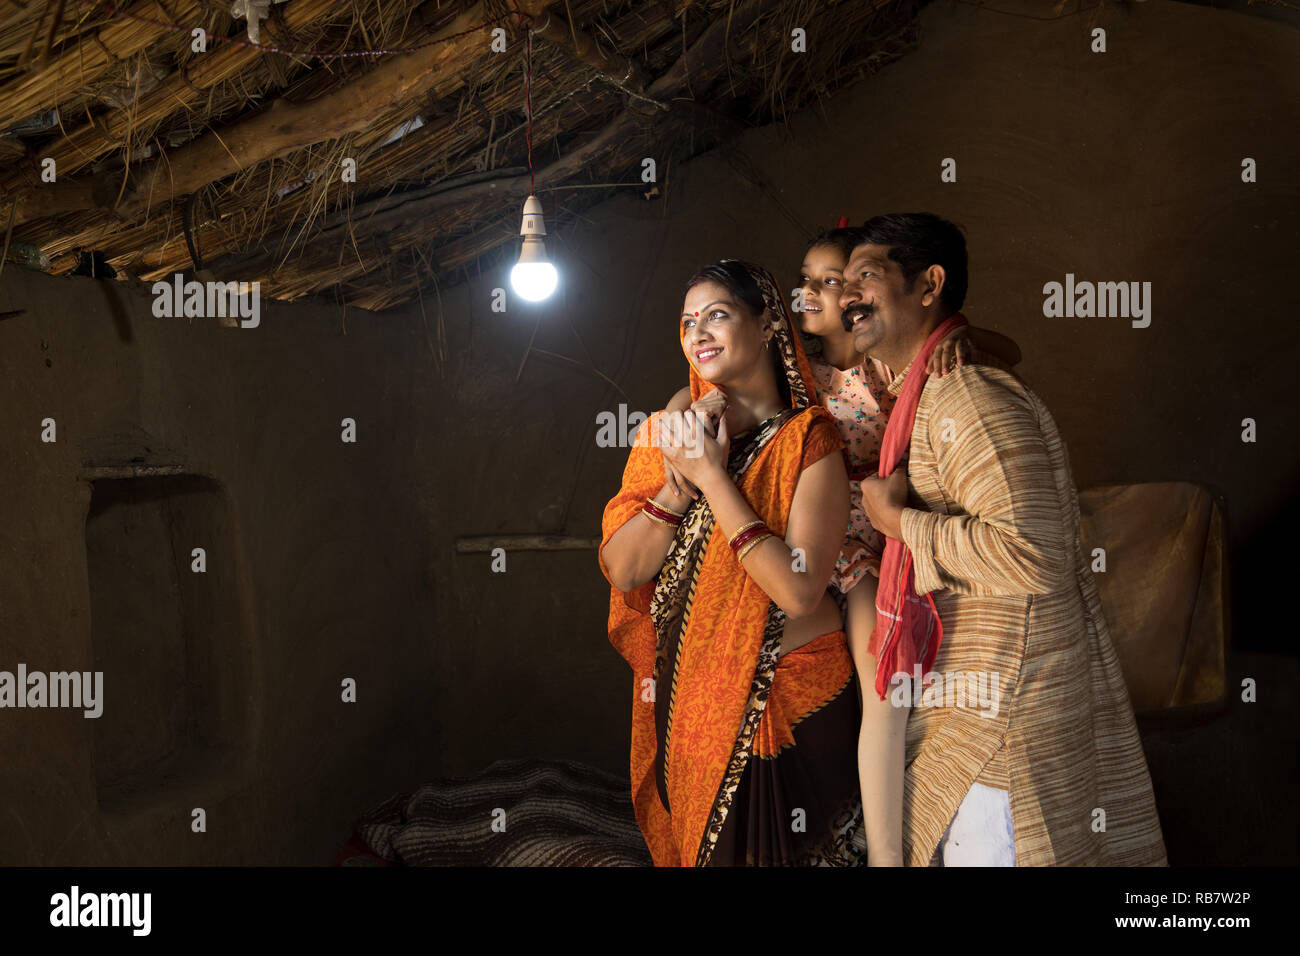 Rural Indian family delighted at the glow of light bulb and electricity reaching their home after long wait - Stock Image